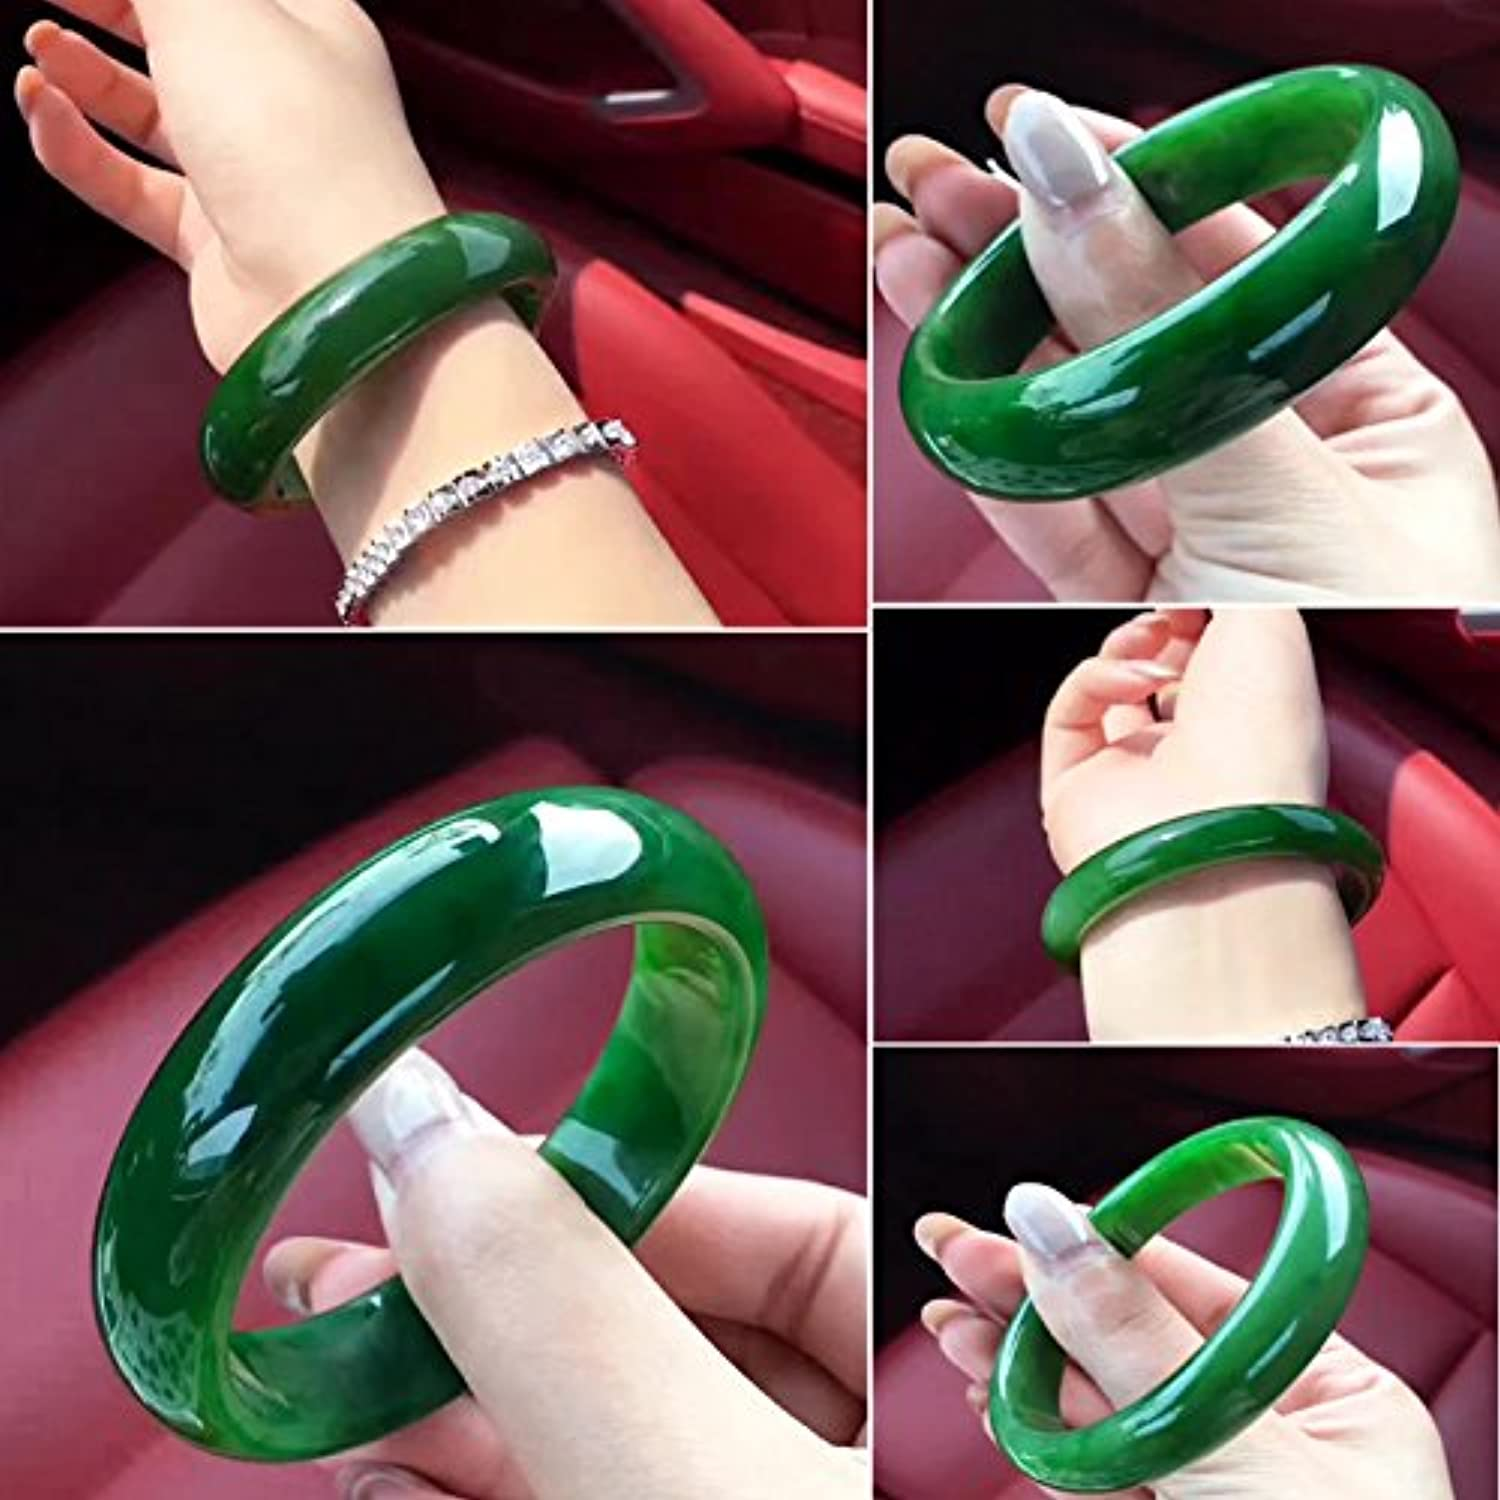 Natural Xinjiang Hetian Jade Bracelets and Necklace Pendant Ring Bracelet Spinach Green Certificates Sent No Black